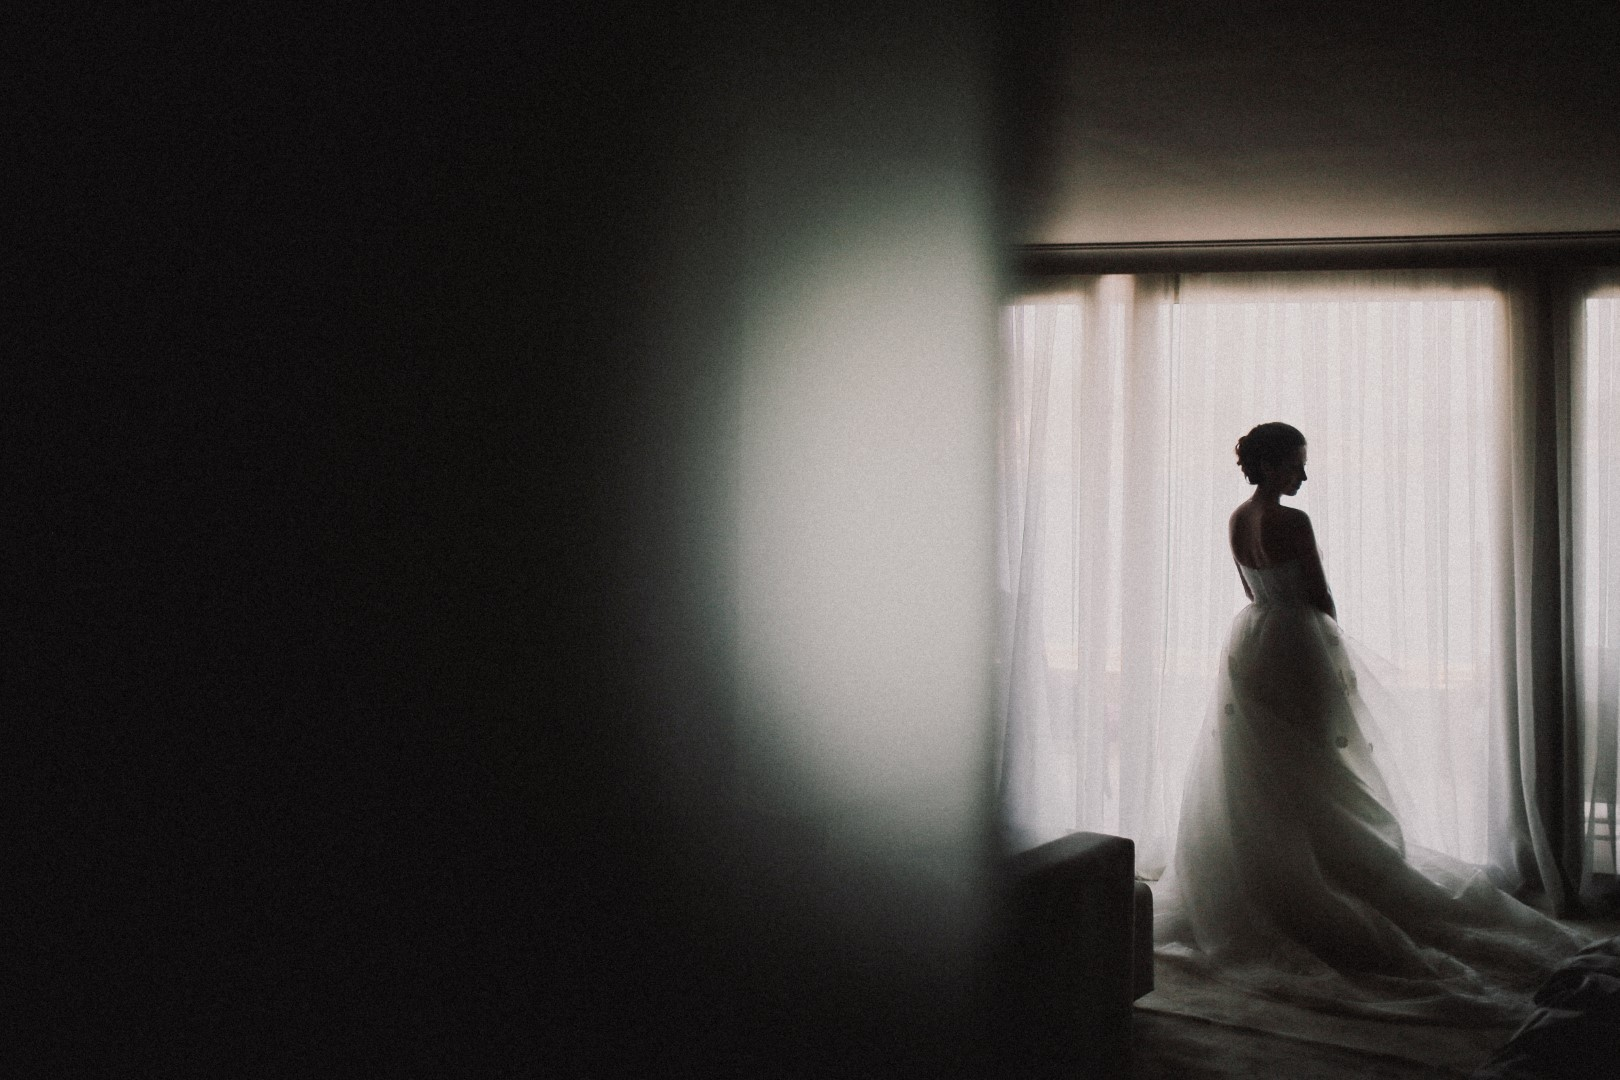 This is a photo of the bride. There isn't much color and it's blurry, very atmospheric. She just got ready in the hotel. We can see her back. She is in front of a window and wearing a beautiful long white wedding dress.